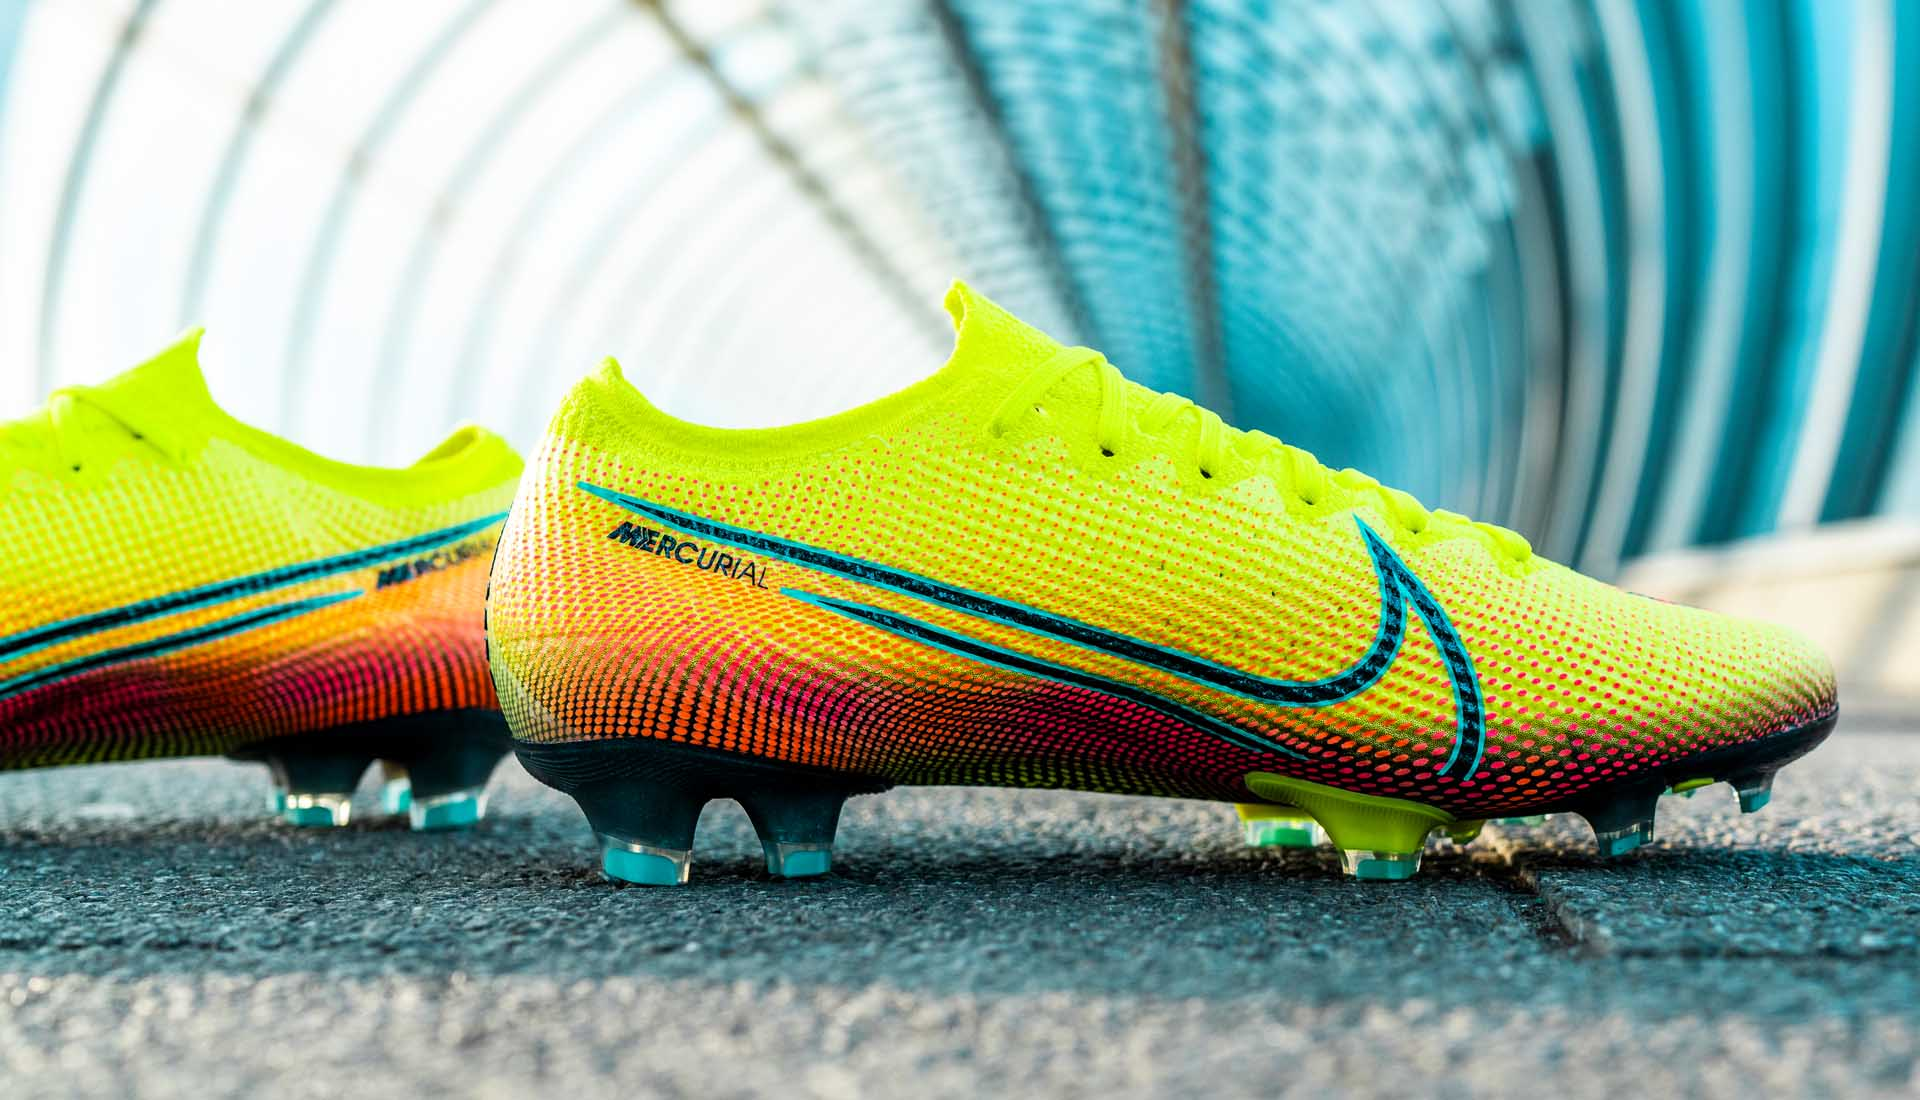 Nike Launch The Mercurial 'Dream Speed 2' - SoccerBible